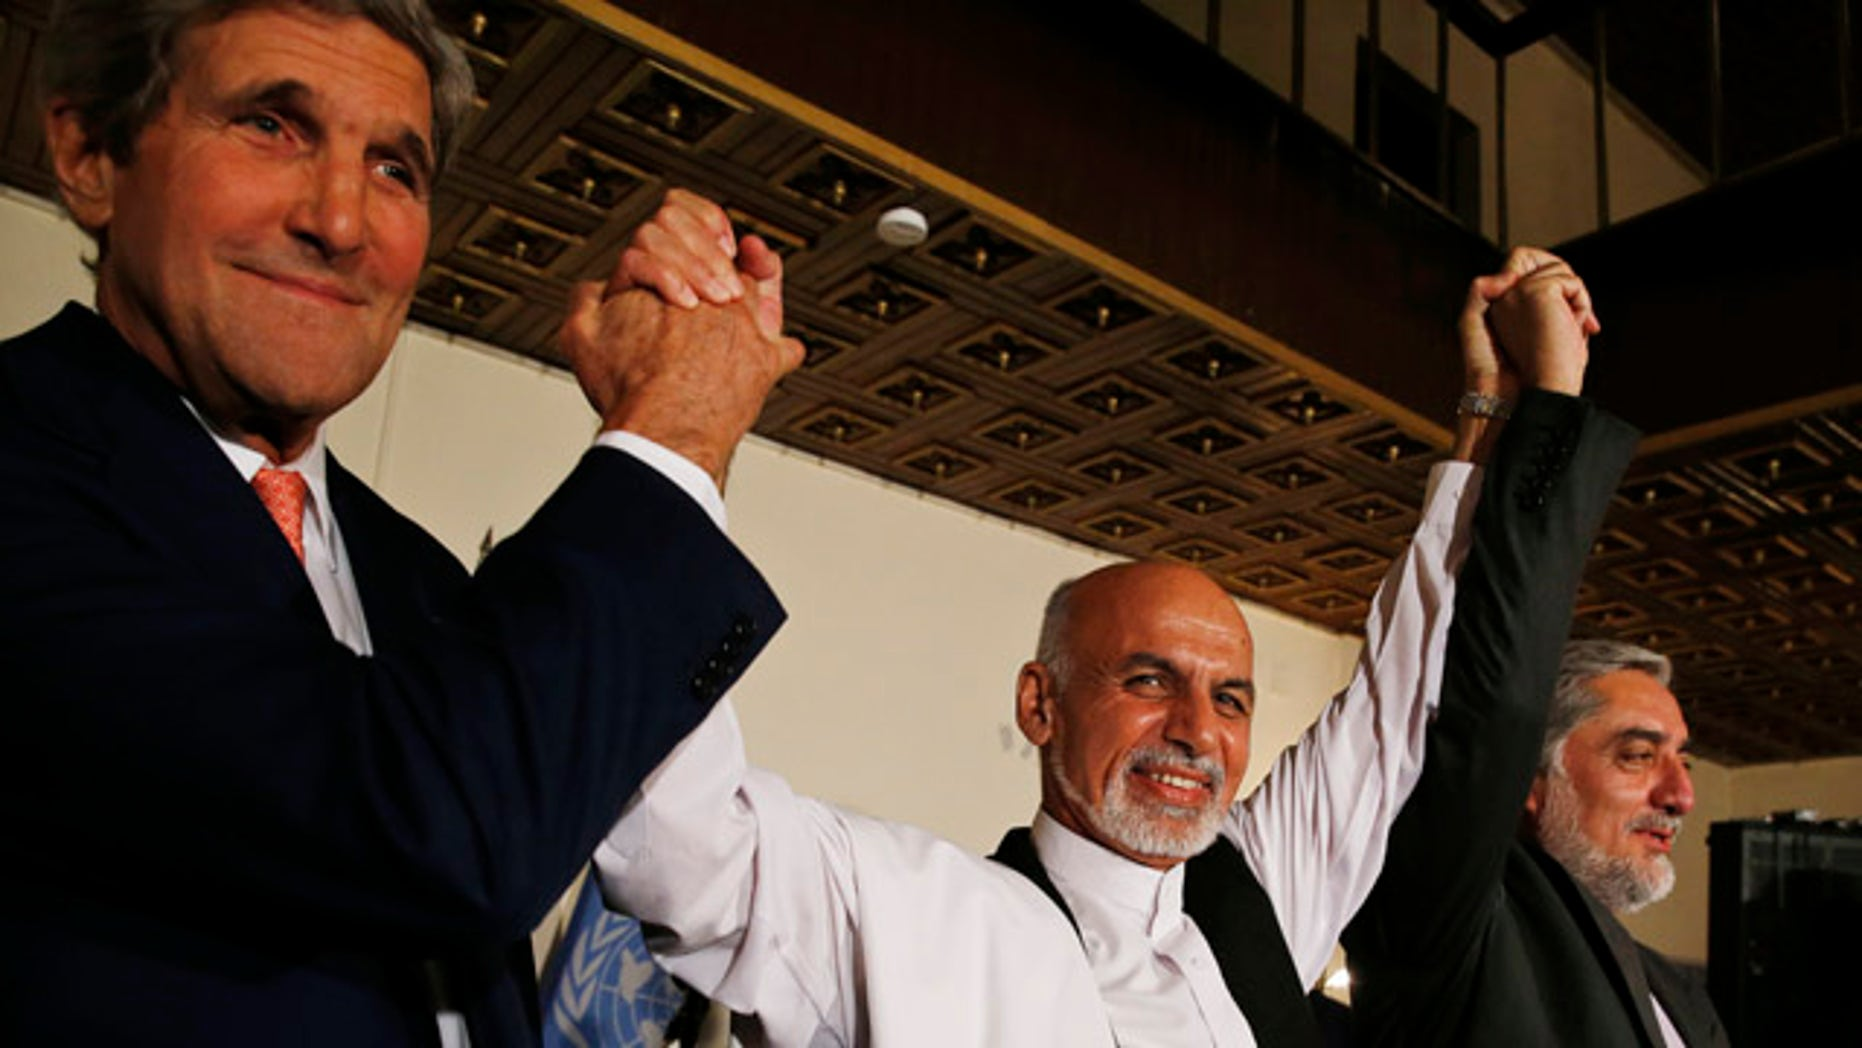 July 12, 2014: U.S. Secretary of State John Kerry, left, and Afghanistan's presidential candidates Ashraf Ghani, center, and Abdulah Abdullah hold their arms in the air together after announcing a deal for the auditing of all Afghan election votes at the United Nations Compound in Kabul.  (AP Photo/Jim Bourg, Pool)